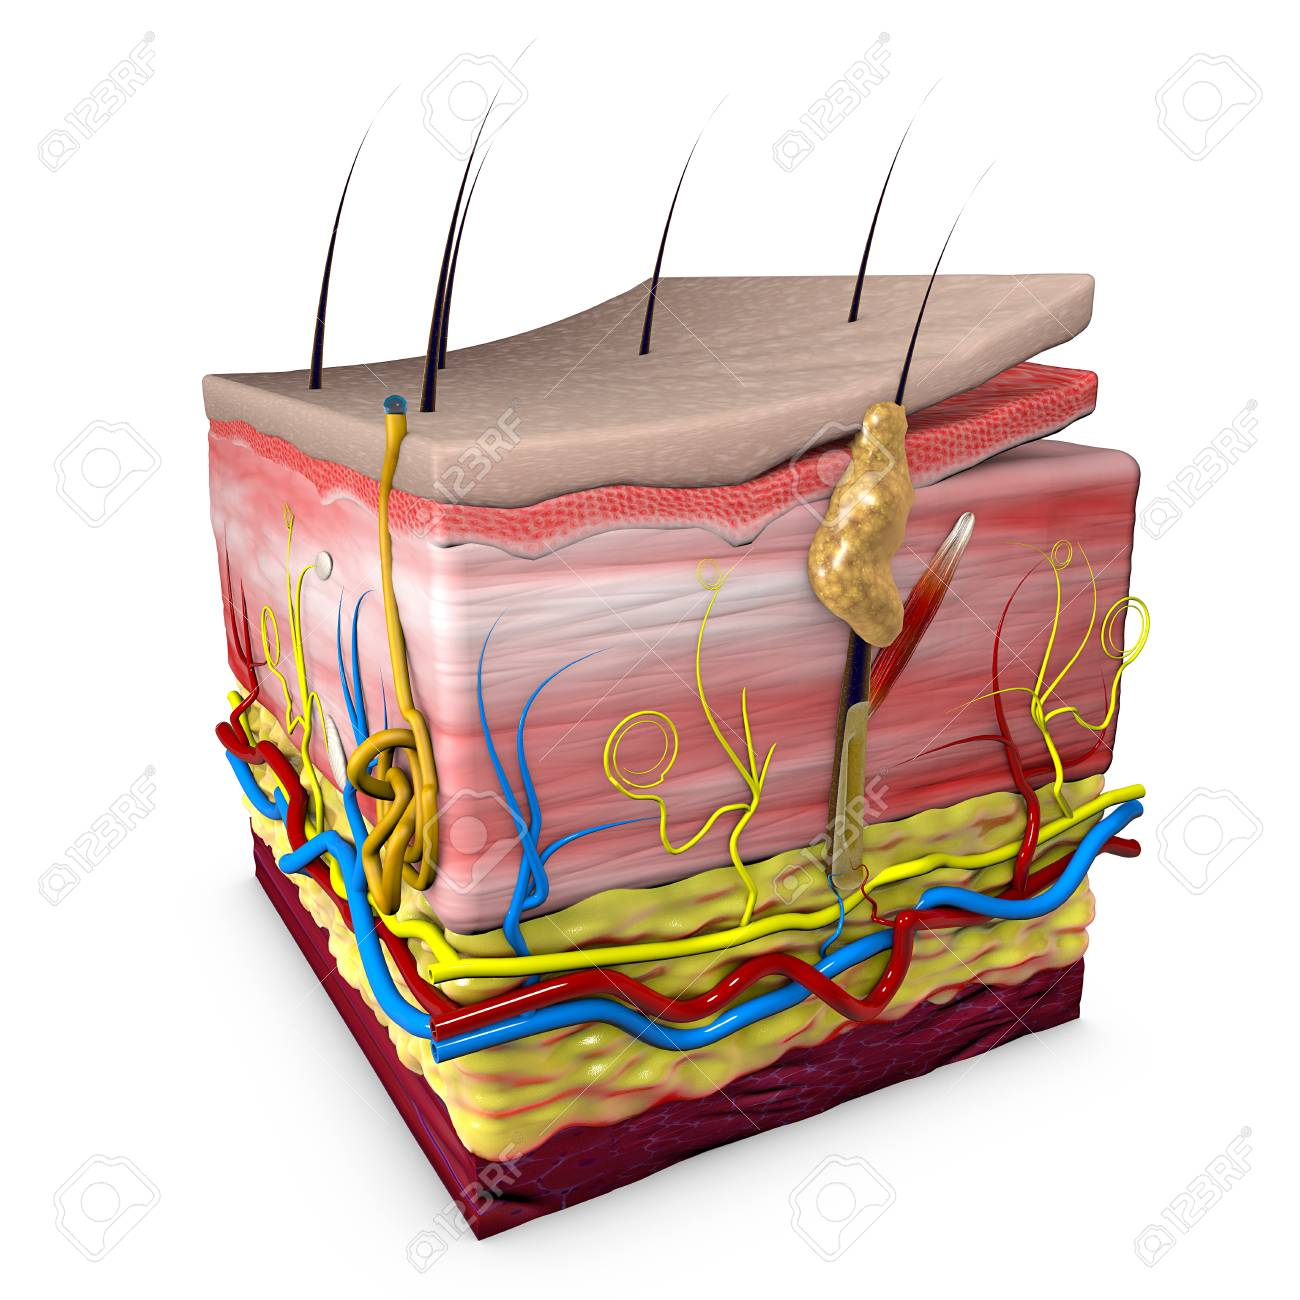 Human Body Skin Section Anatomy 3d Section Of Human Skin 3d